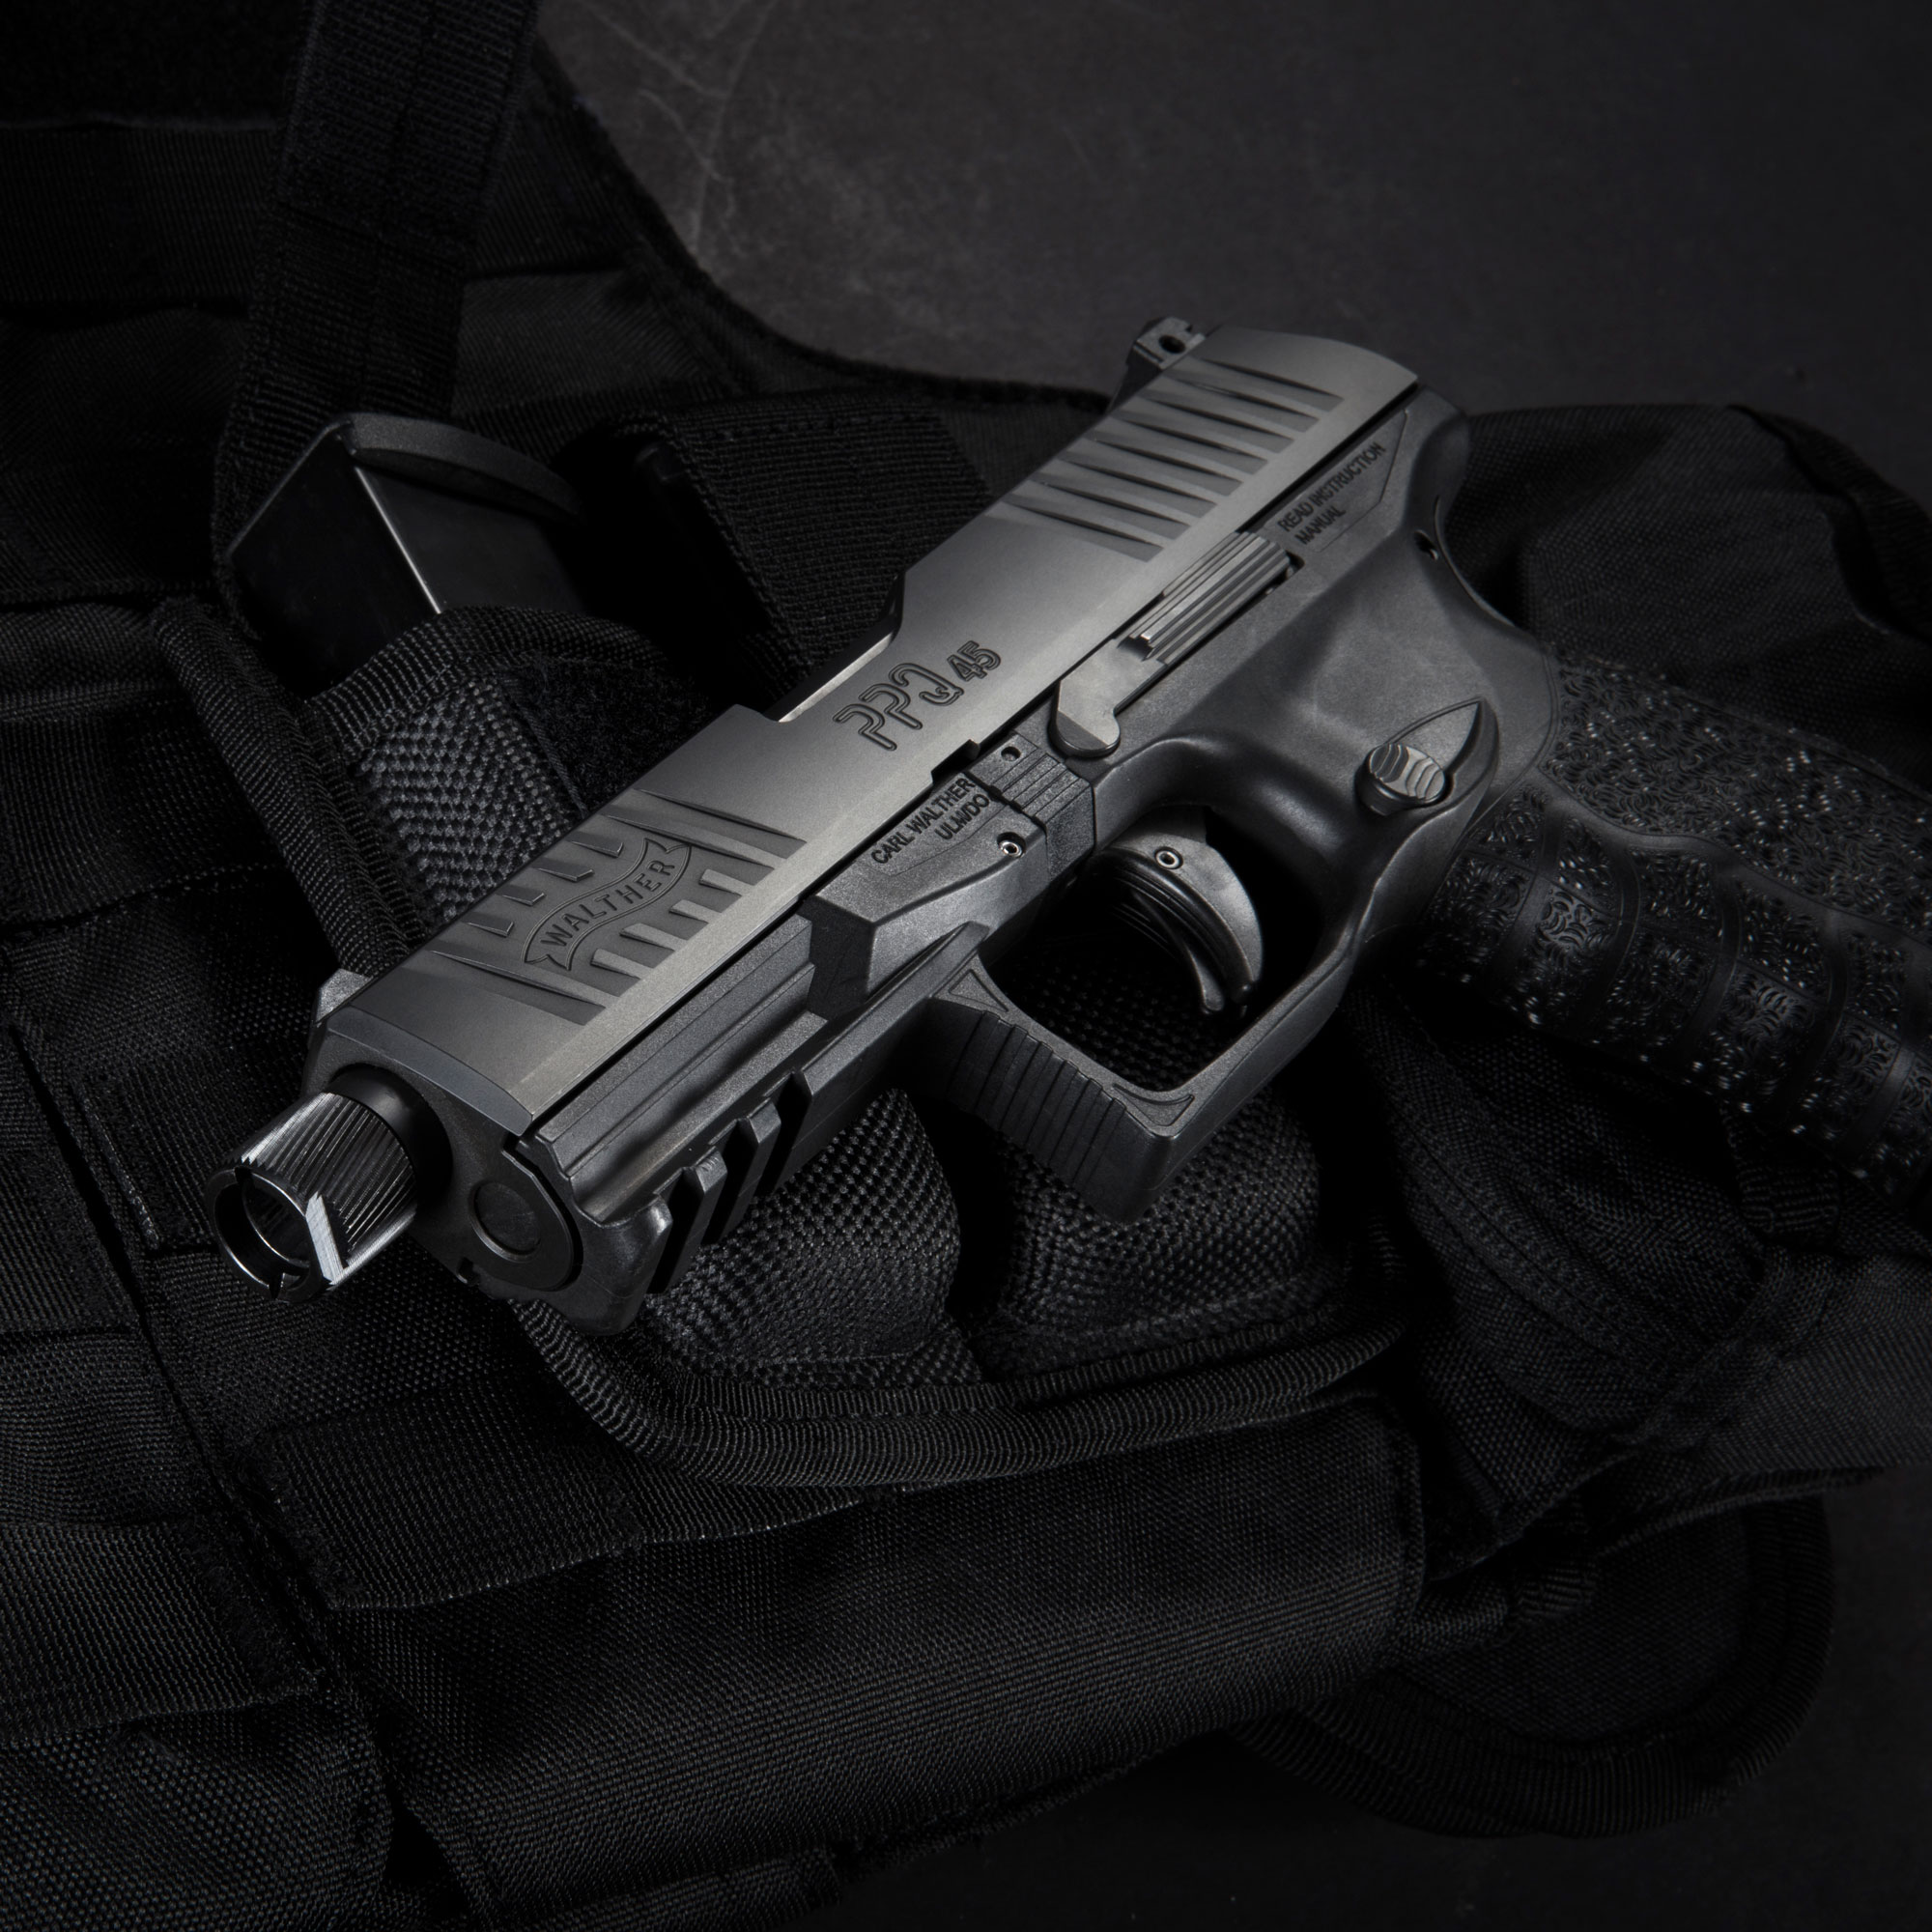 Walther Professional Security Contractor